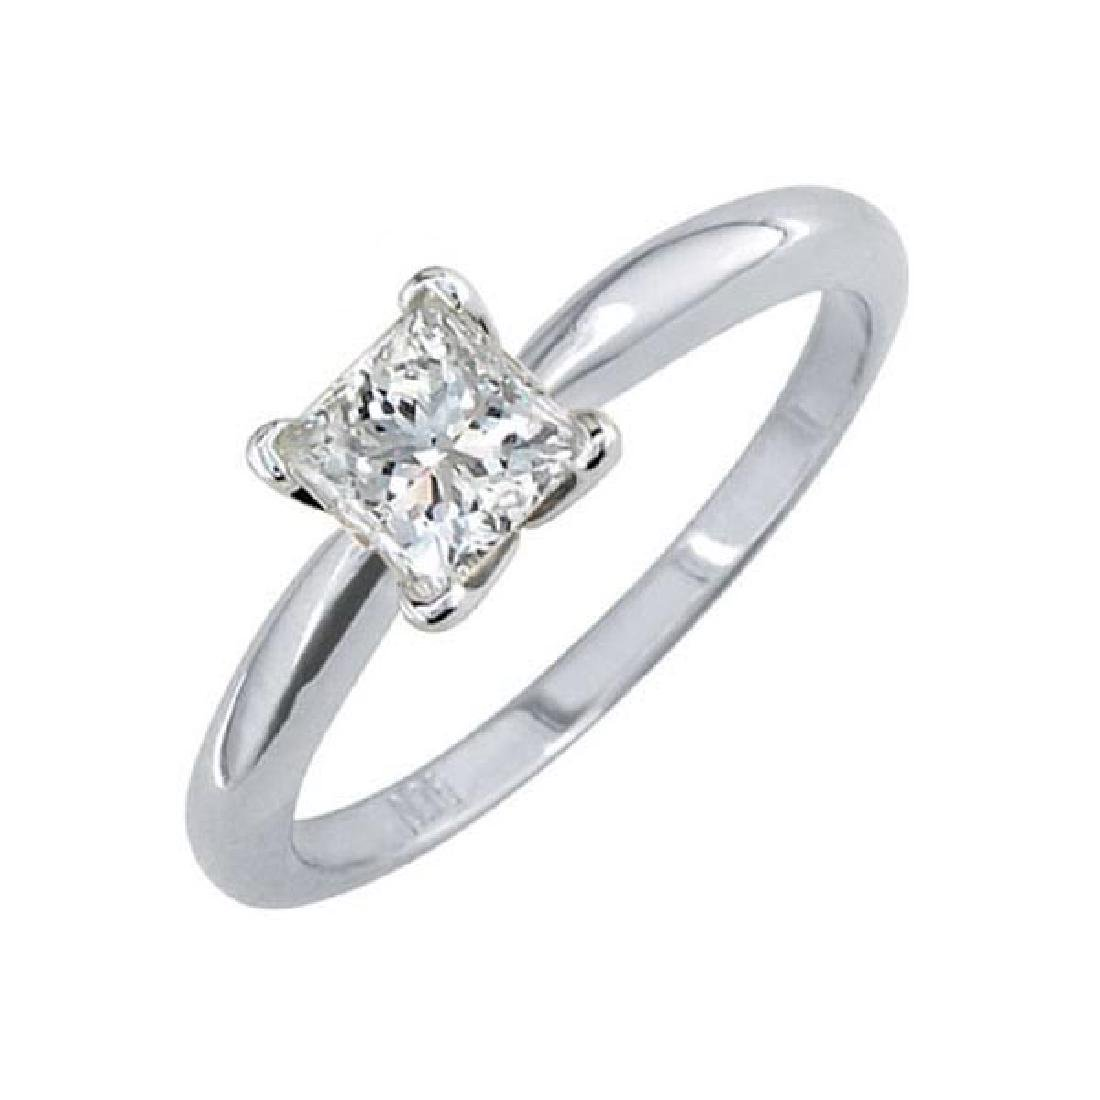 Certified 0.31 CTW Princess Diamond Solitaire 14k Ring